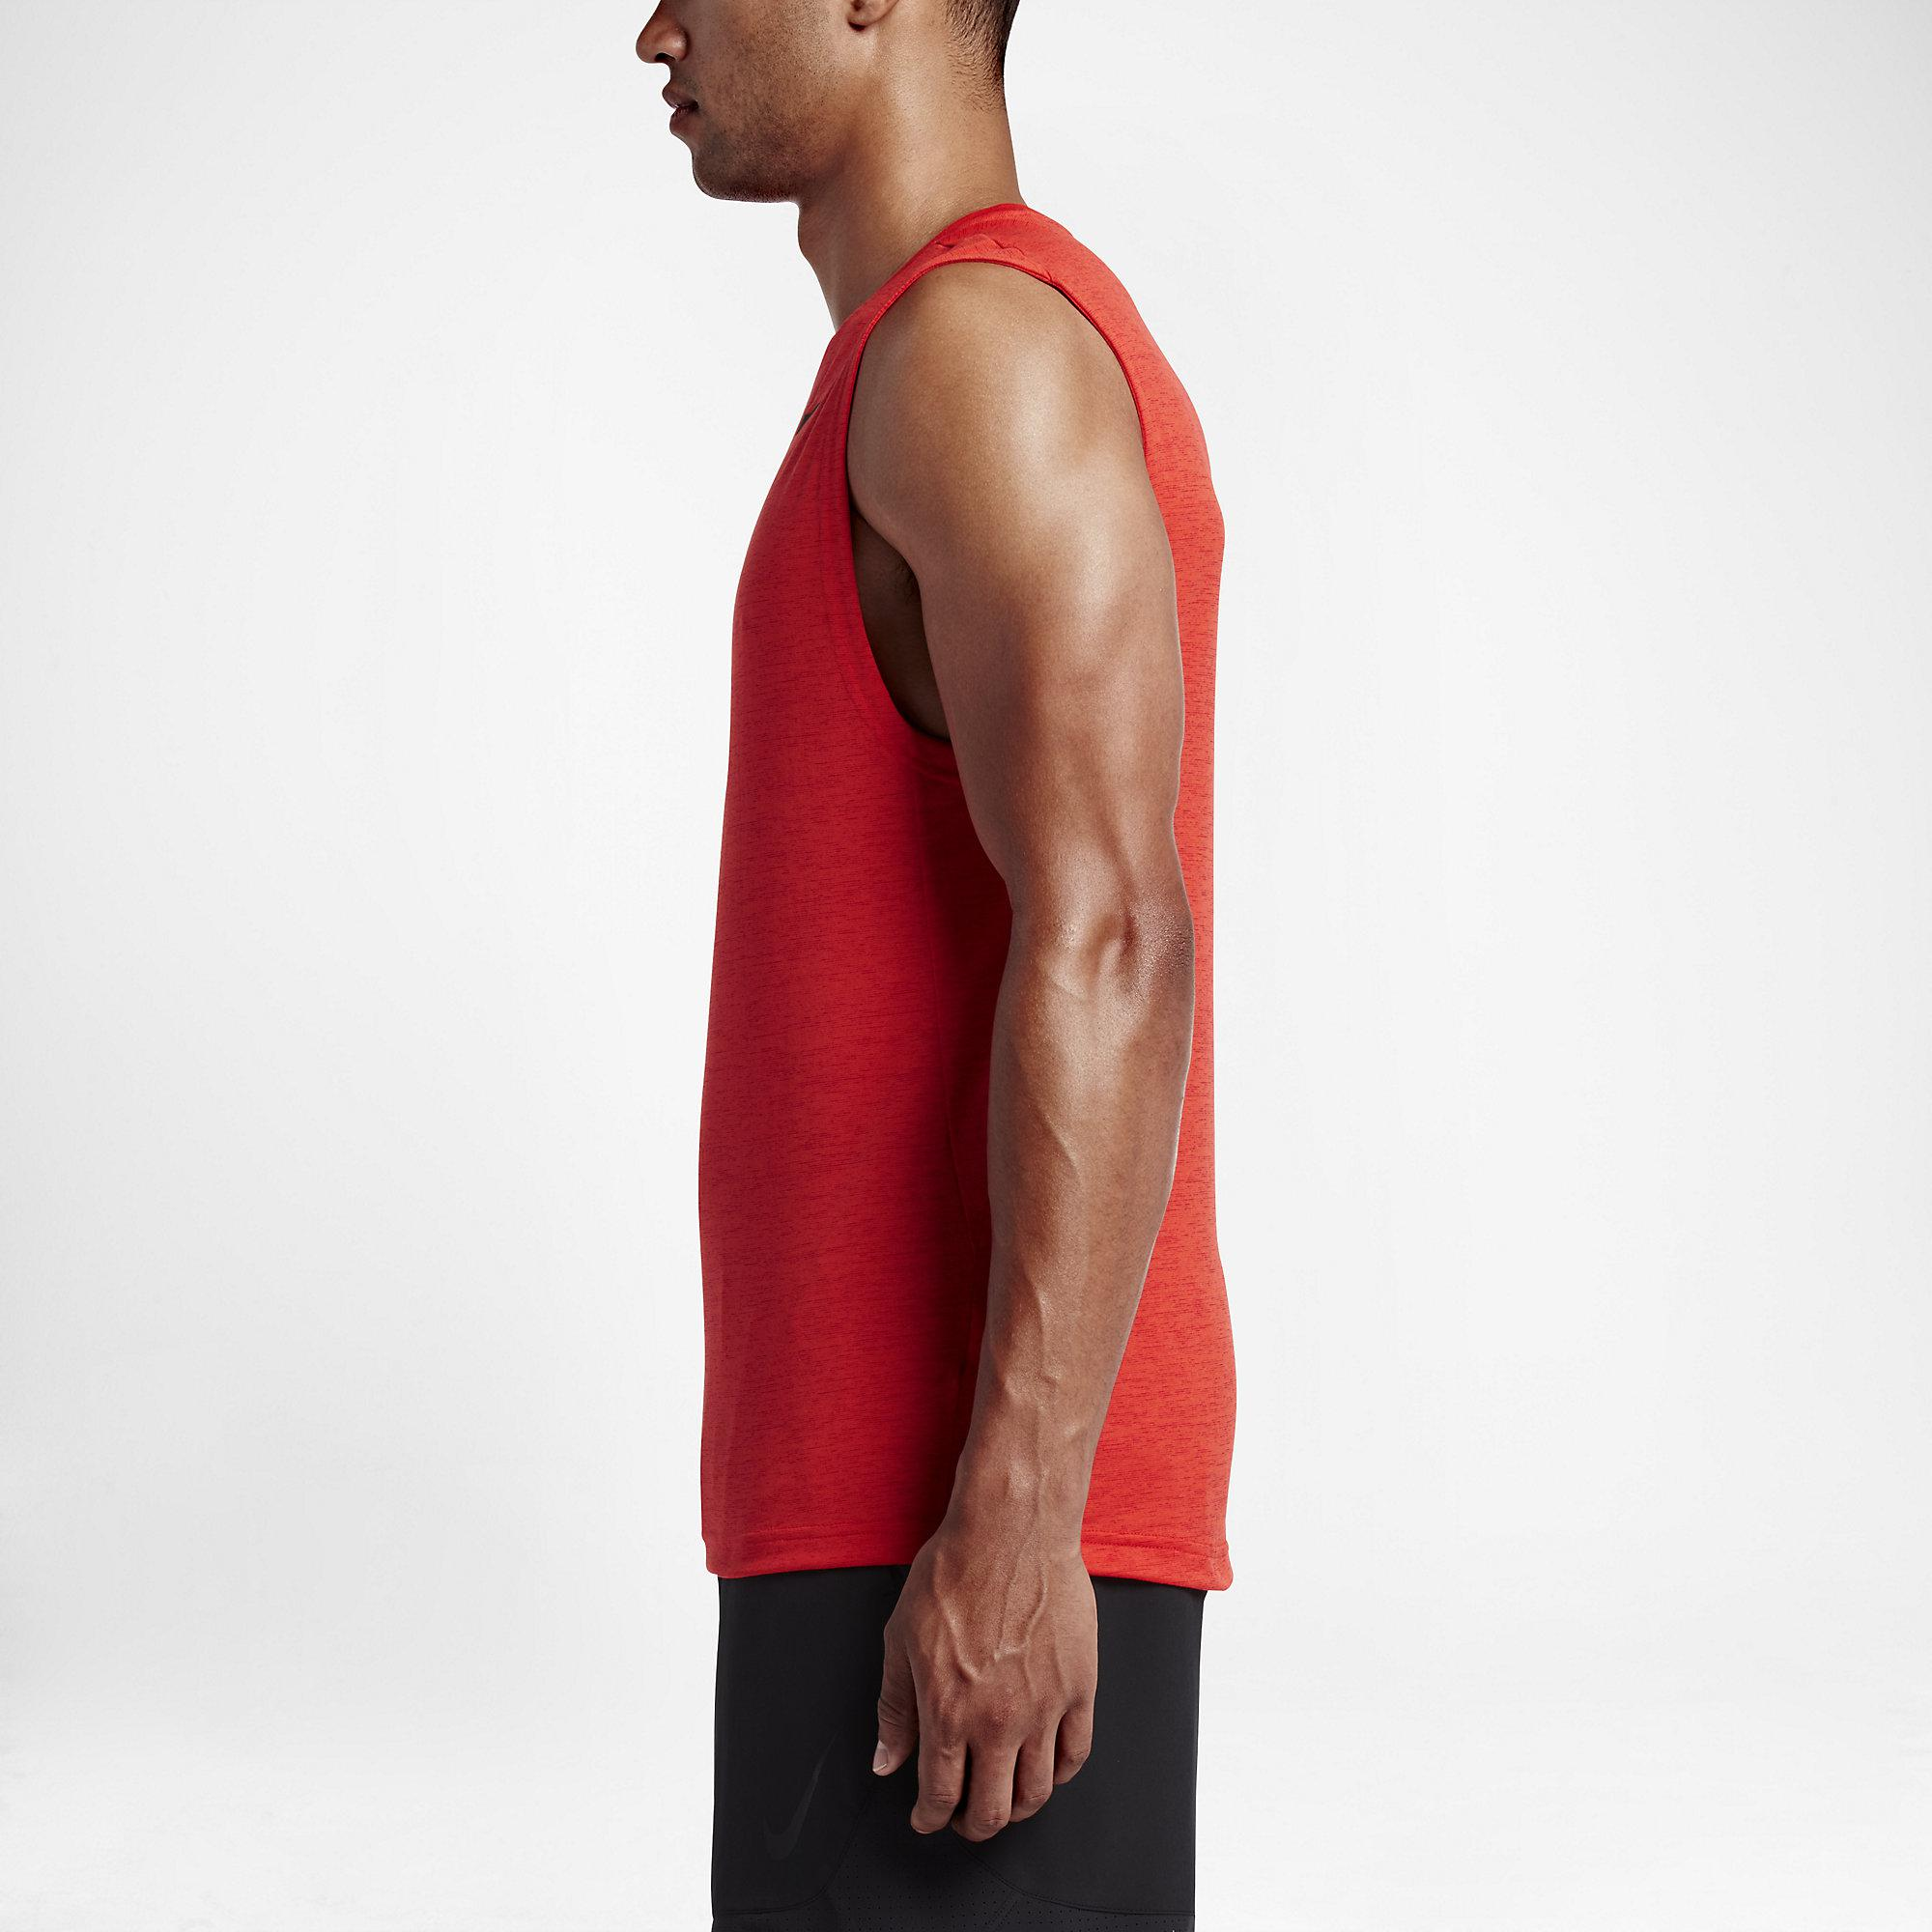 dda24a1cca07 Nike Mens Dry Training Tank Top - University Red Light Crimson ...